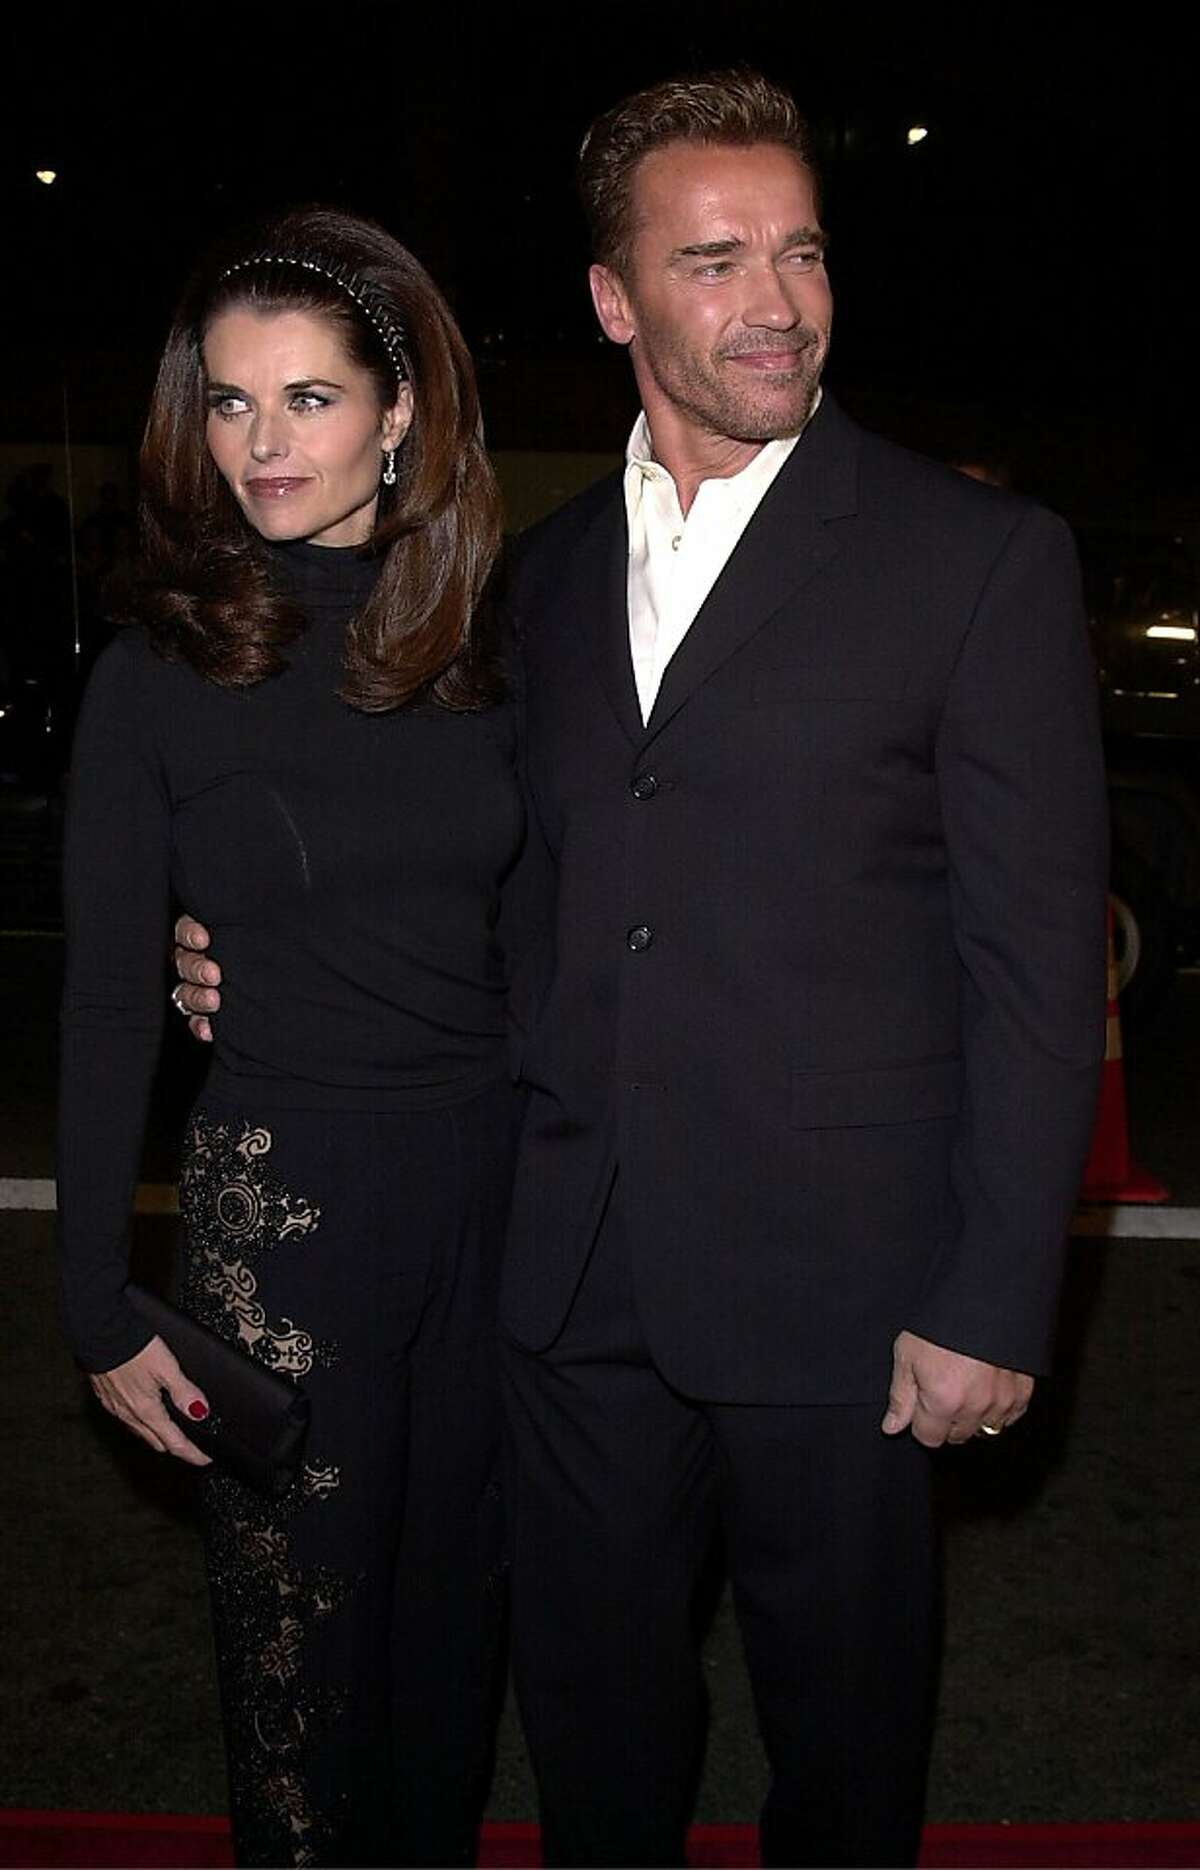 381840 06: Actor Arnold Schwarzenegger and wife Maria Shriver arrive at the premiere of